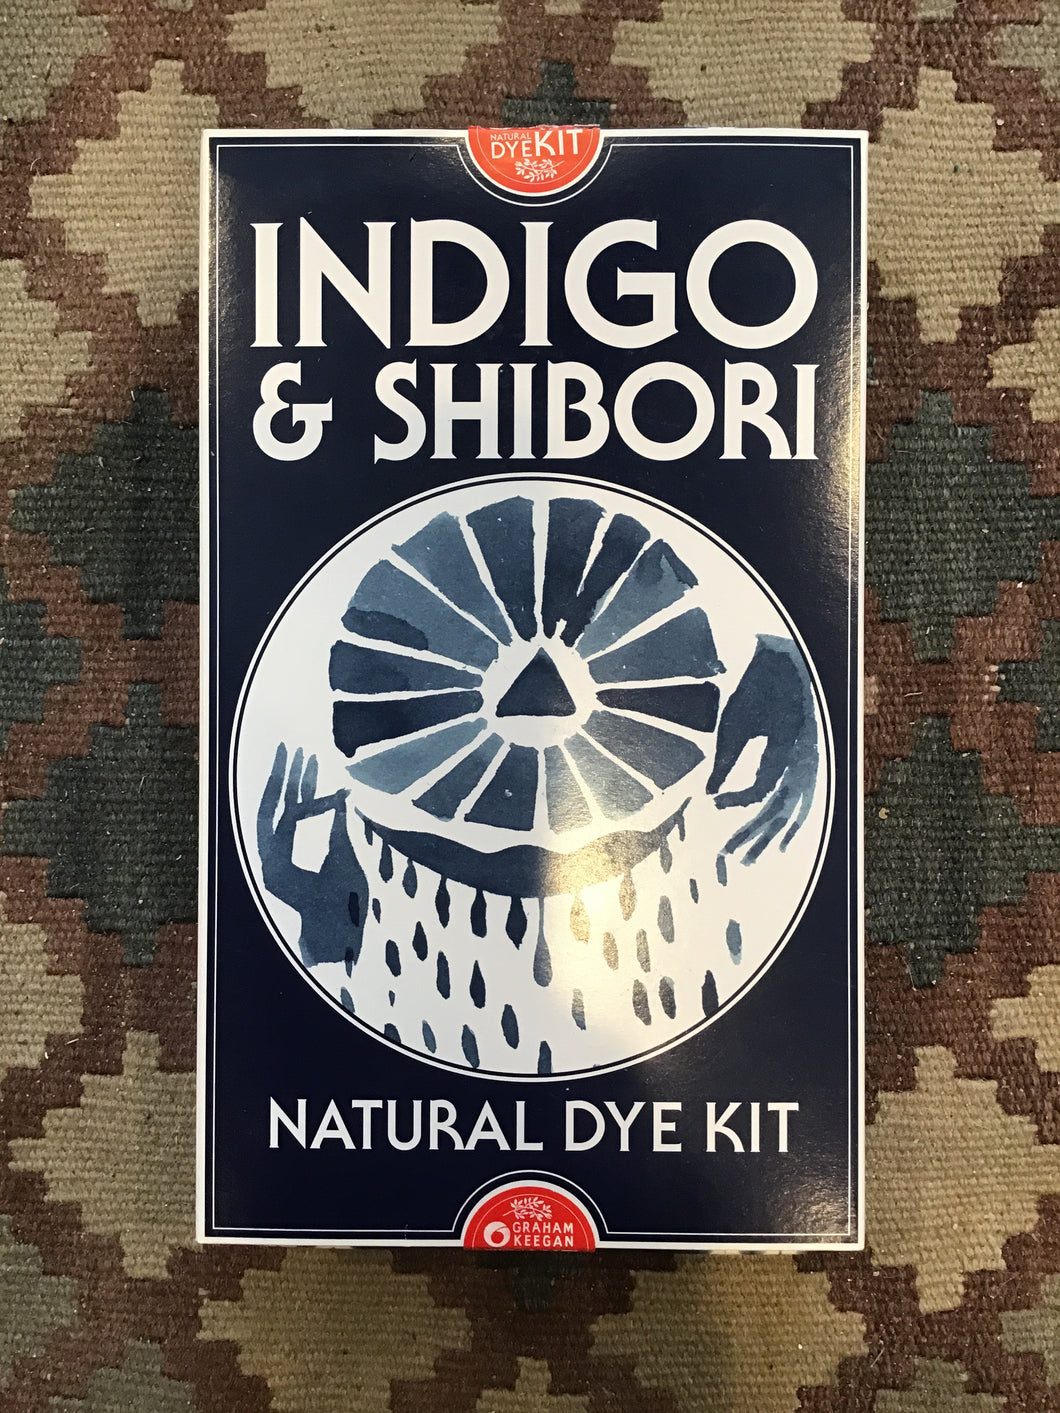 Indigo & Shibori Natural Dye Kit